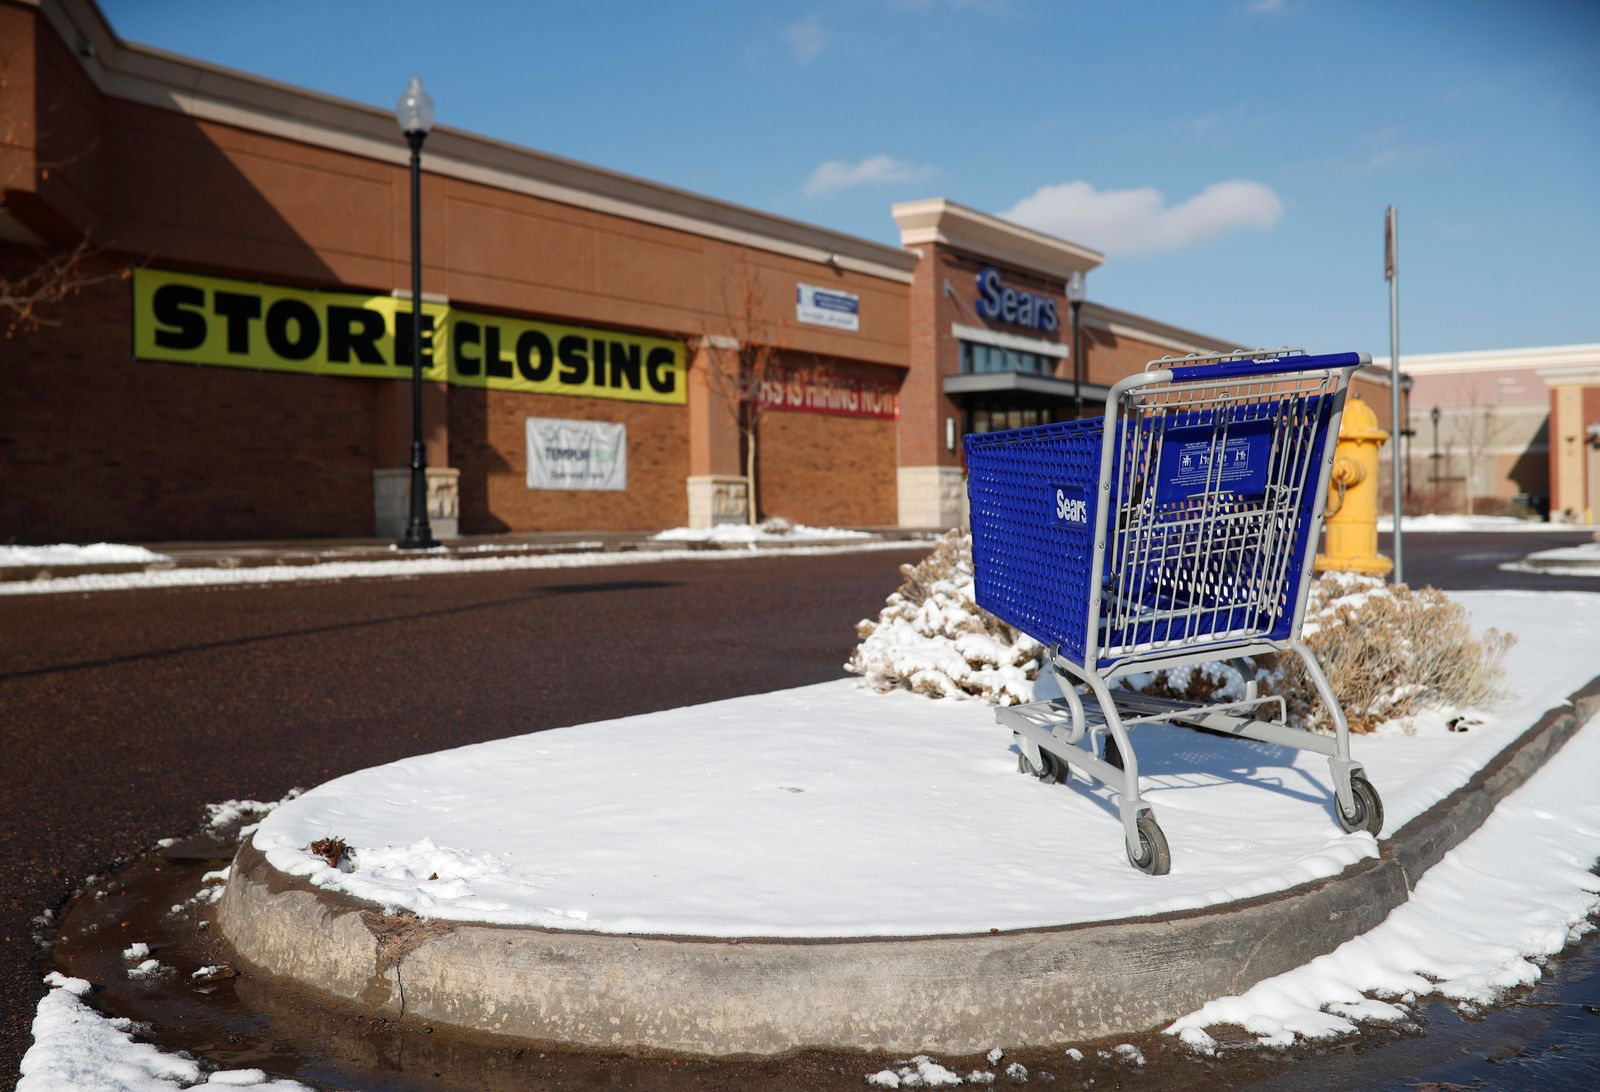 FILE- In this Tuesday, Jan. 1, 2019, file photo, an empty shopping cart sits in the snow outside a Sears store in the Streets of Southglenn mall in Littleton, Colo. (AP Photo/David Zalubowski, File)